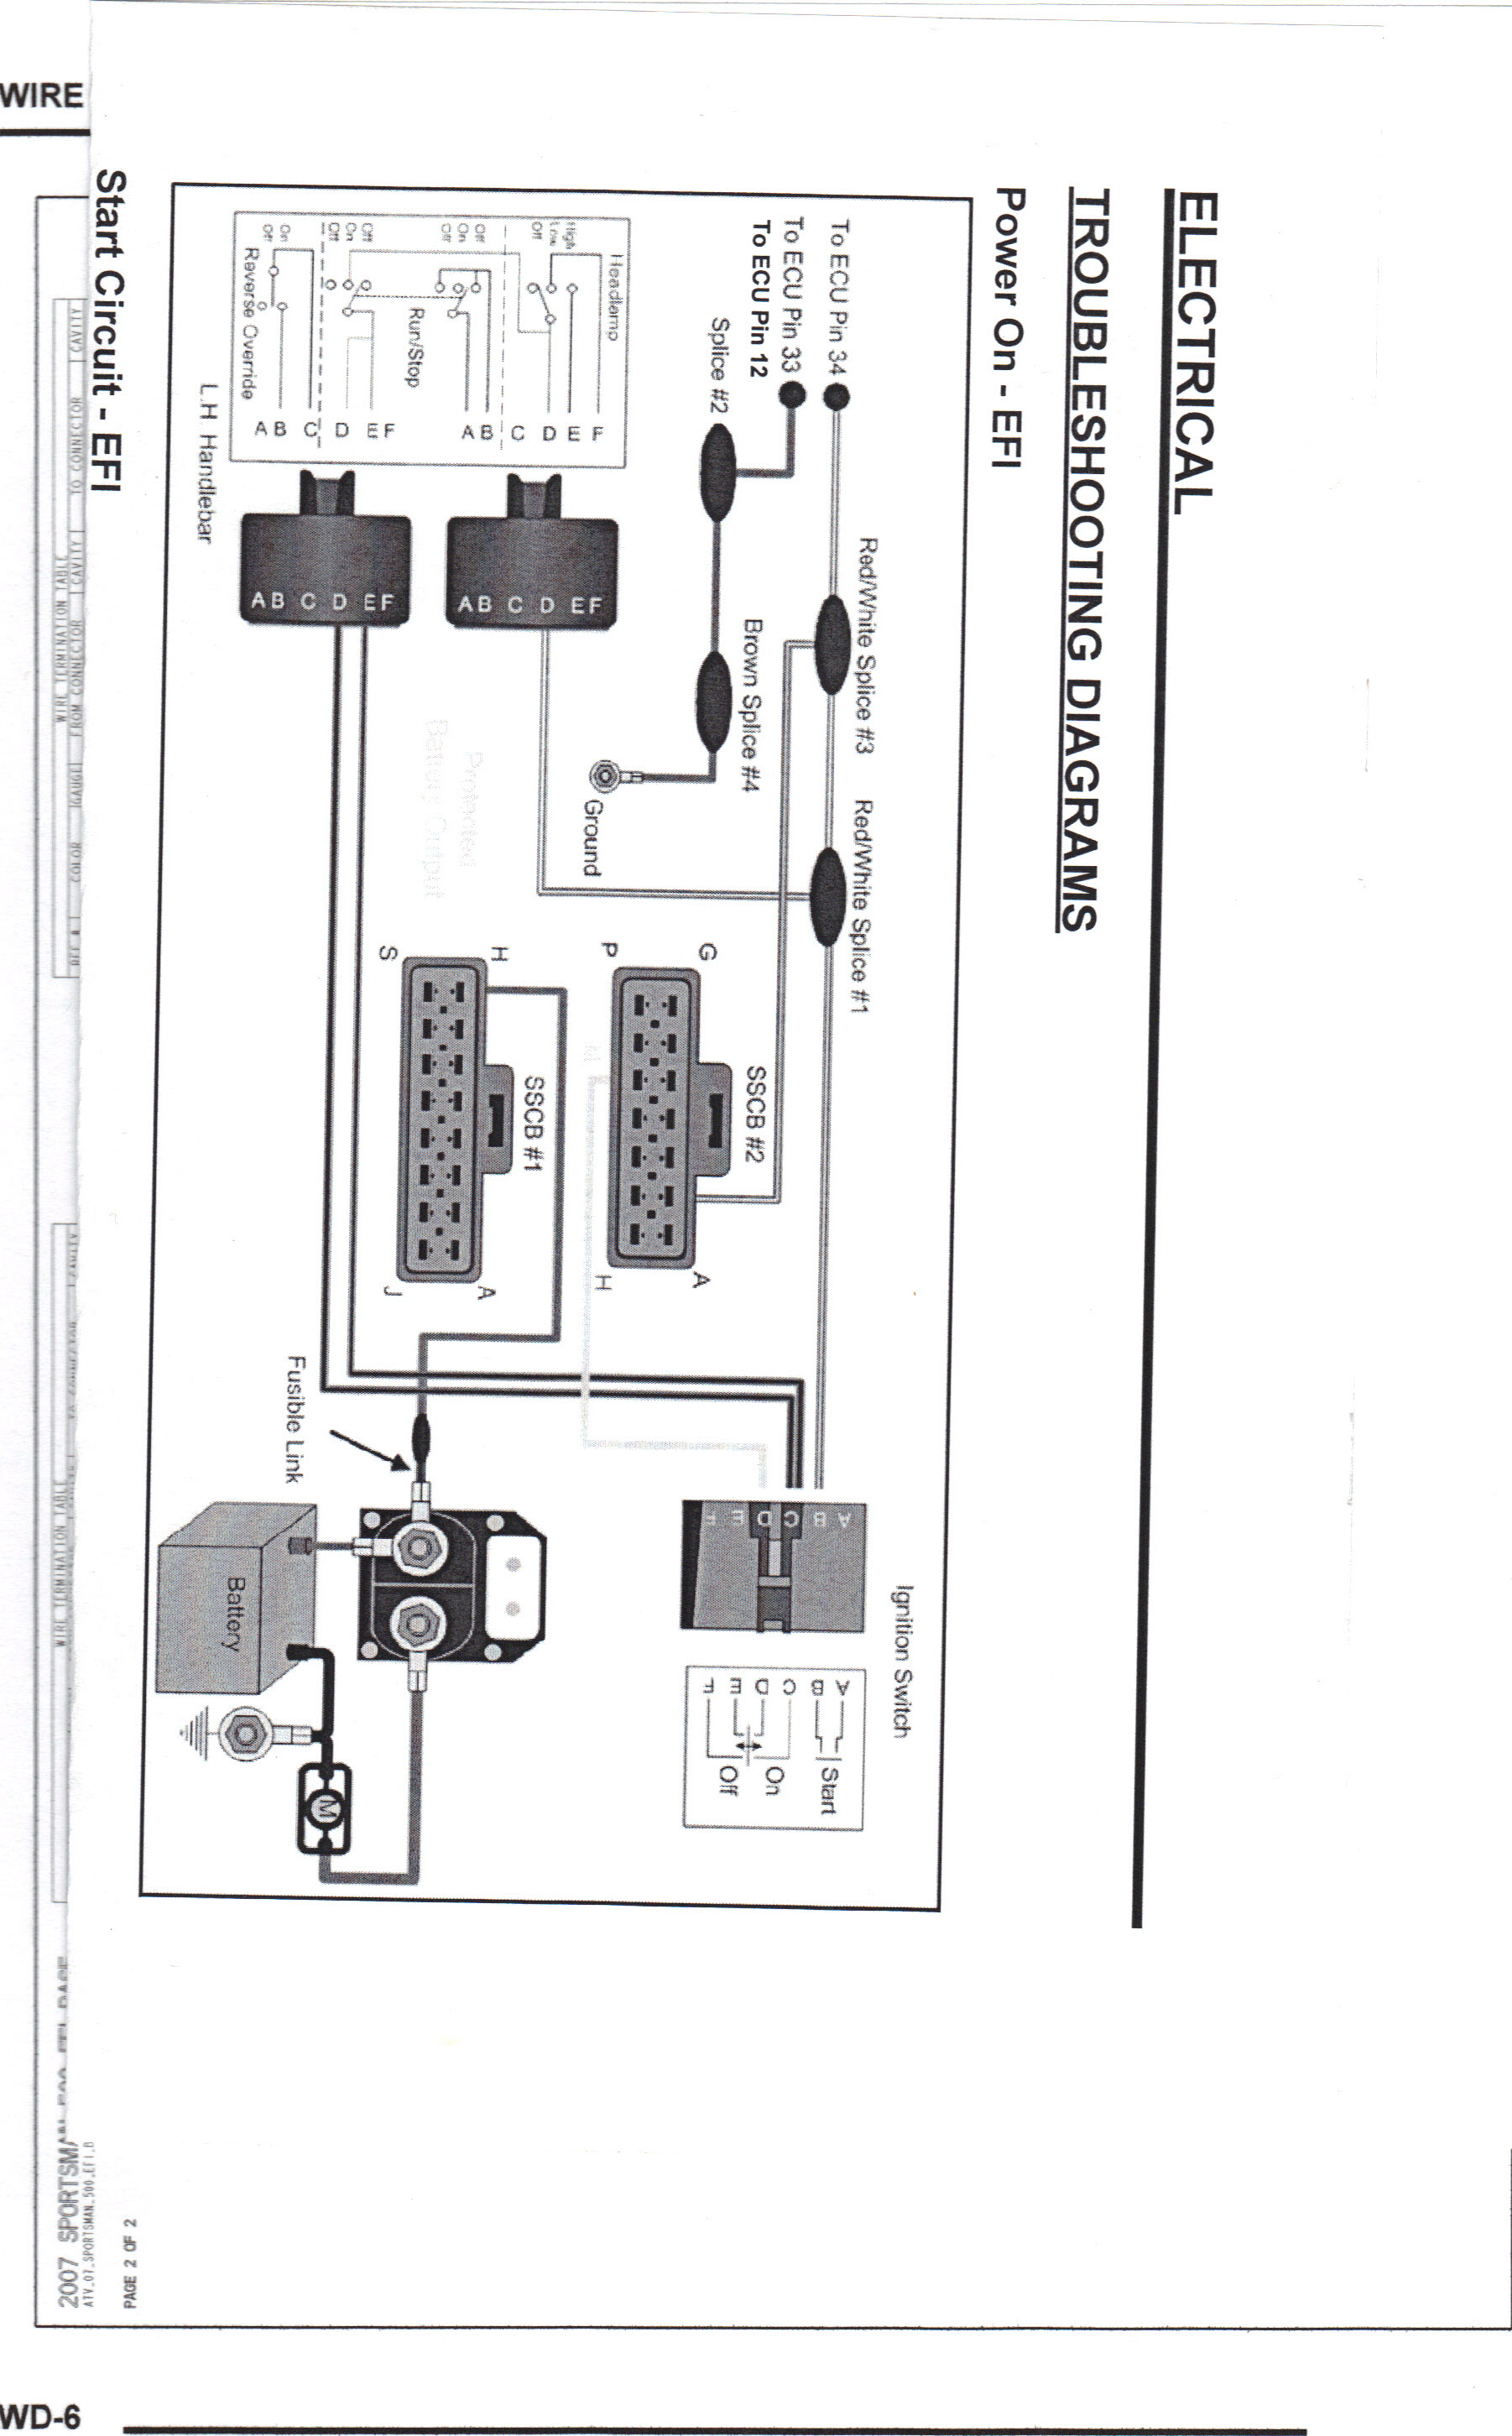 2005 polaris sportsman 500 ho wiring diagram 1996 polaris sportsman 500 stator wiring diagram